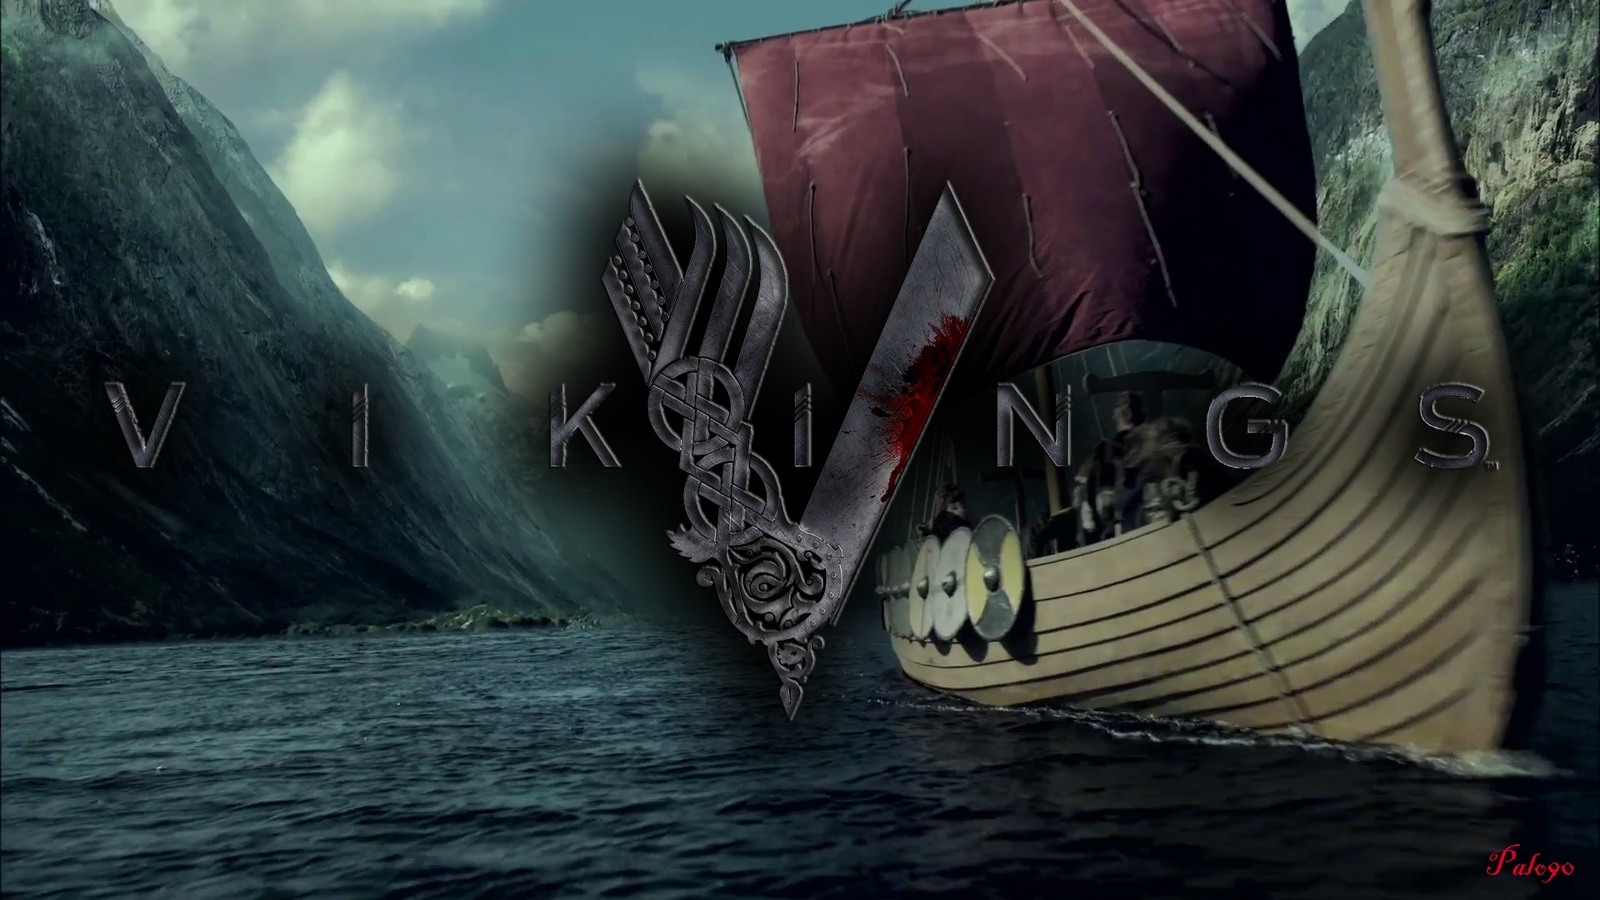 Vikings wallpaper 1